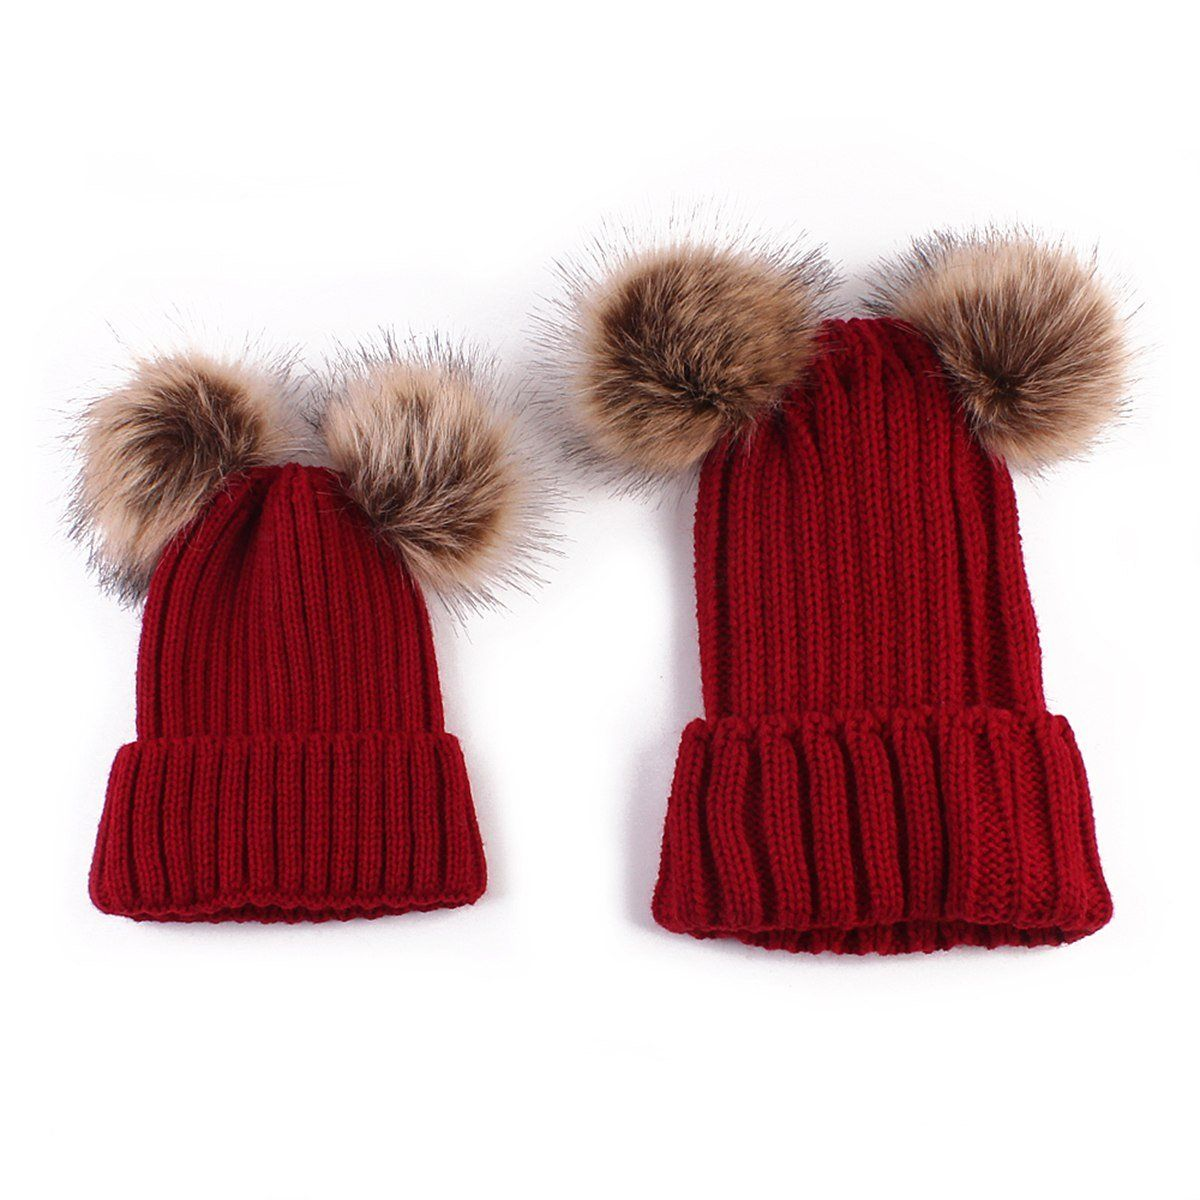 1d3be13d7 2 PCS Set Family Matching Hat Autumn Baby Girls Boys Winter Warm ...